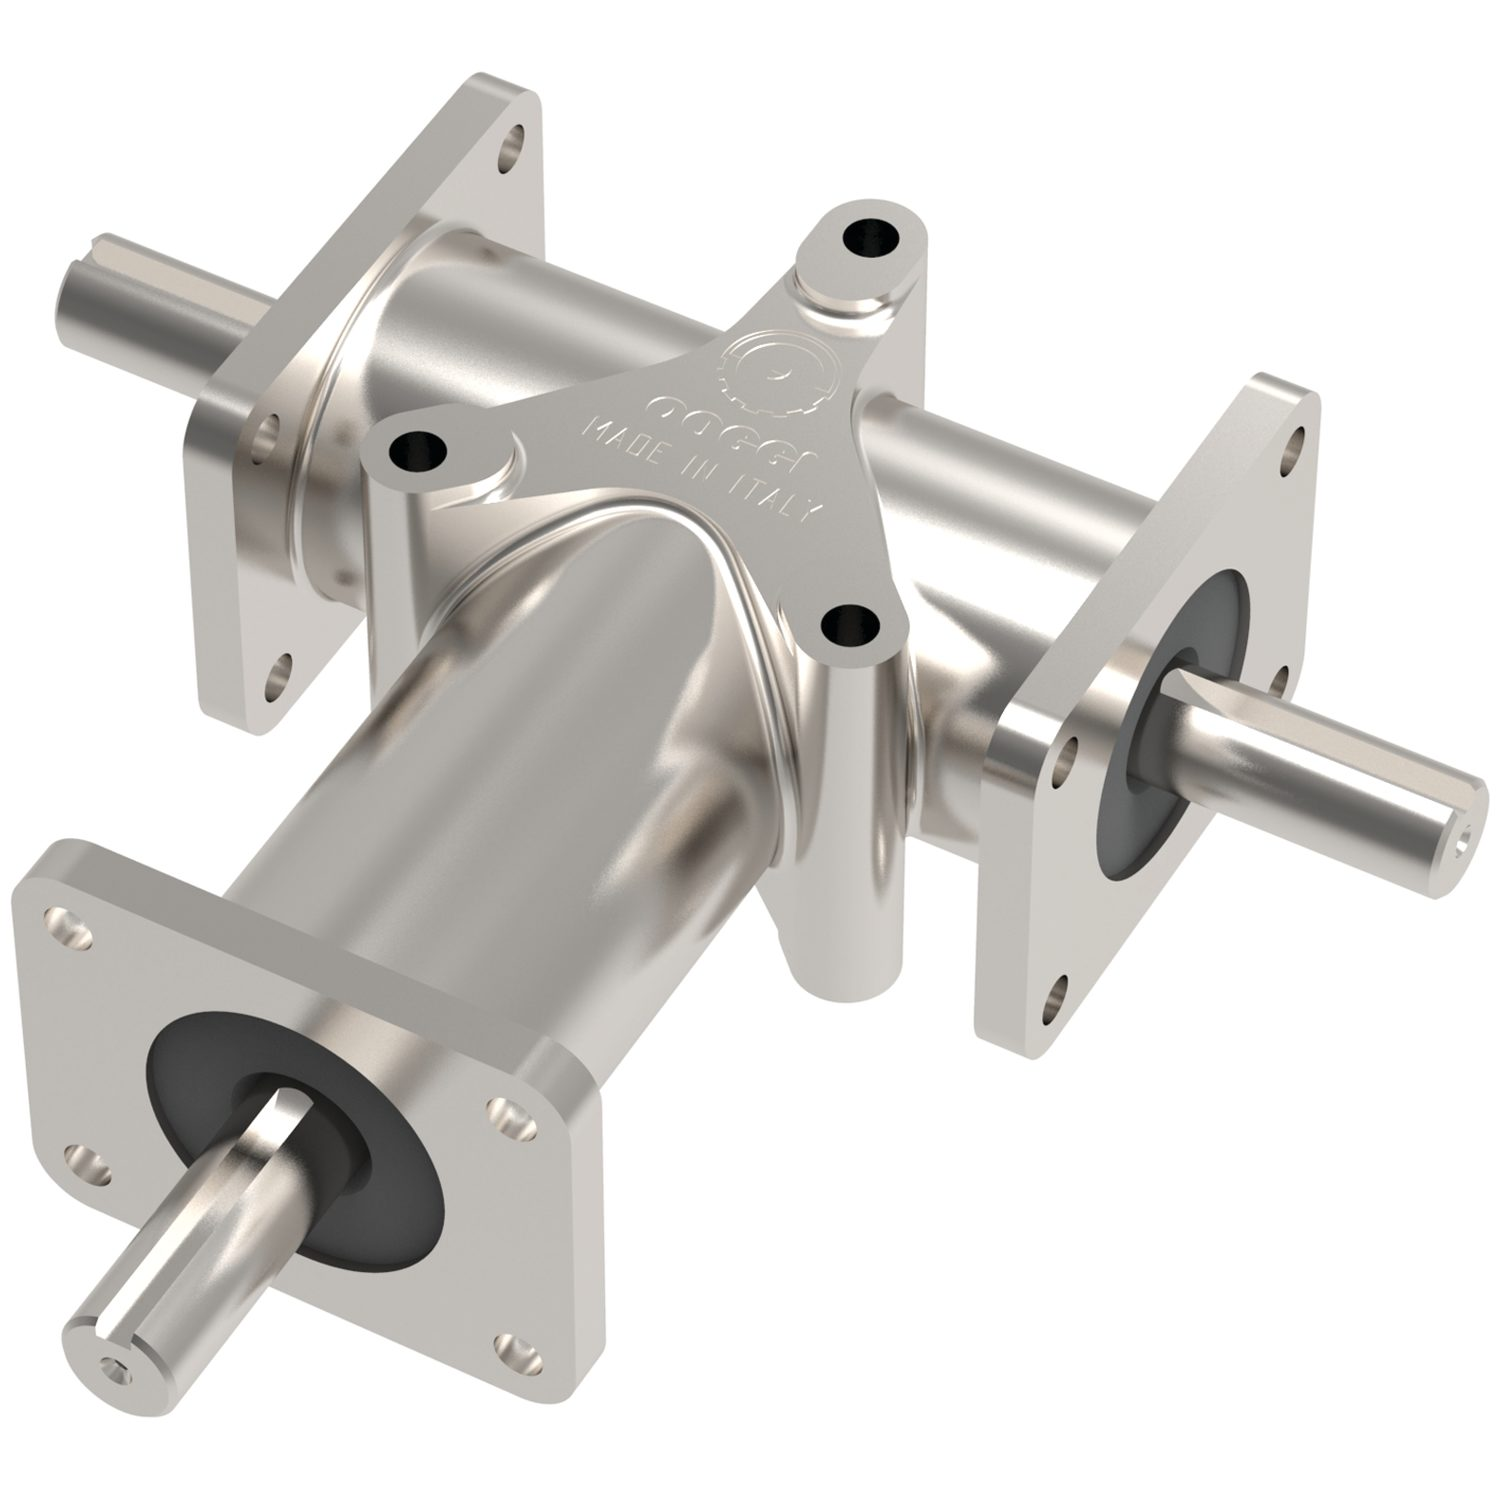 R2355 - Stainless Right Angle Drives - 3 shafts